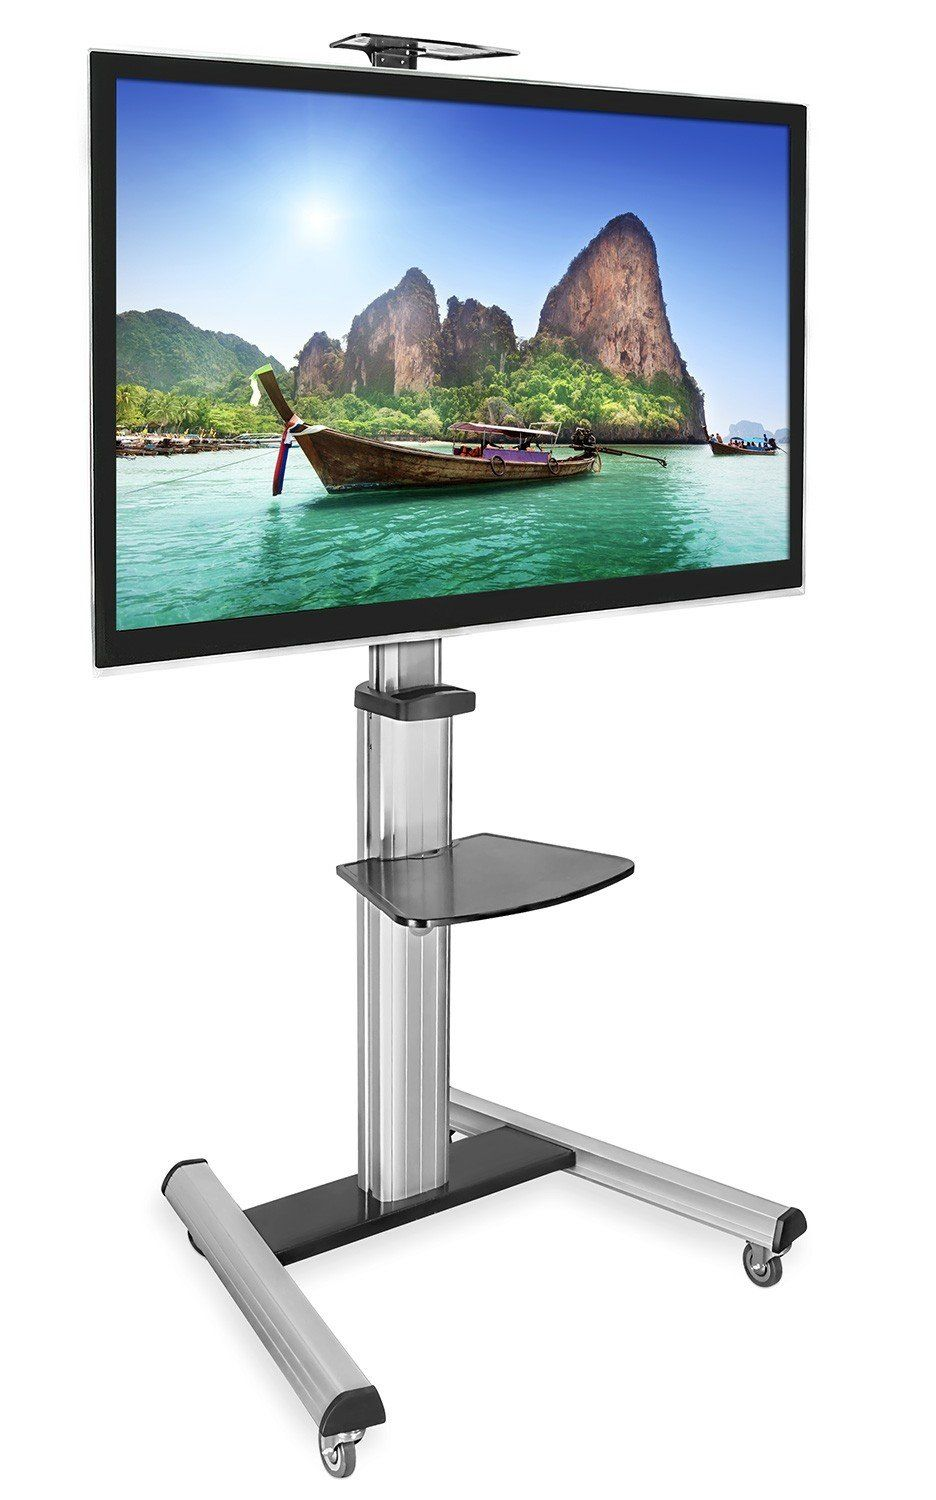 Tv Cart Mobile Height Adjustable Floor Stand Mount 30 70 Lcd Plasma Led Flat Screen Tv Stand Tv Cart Tv Stand With Mount